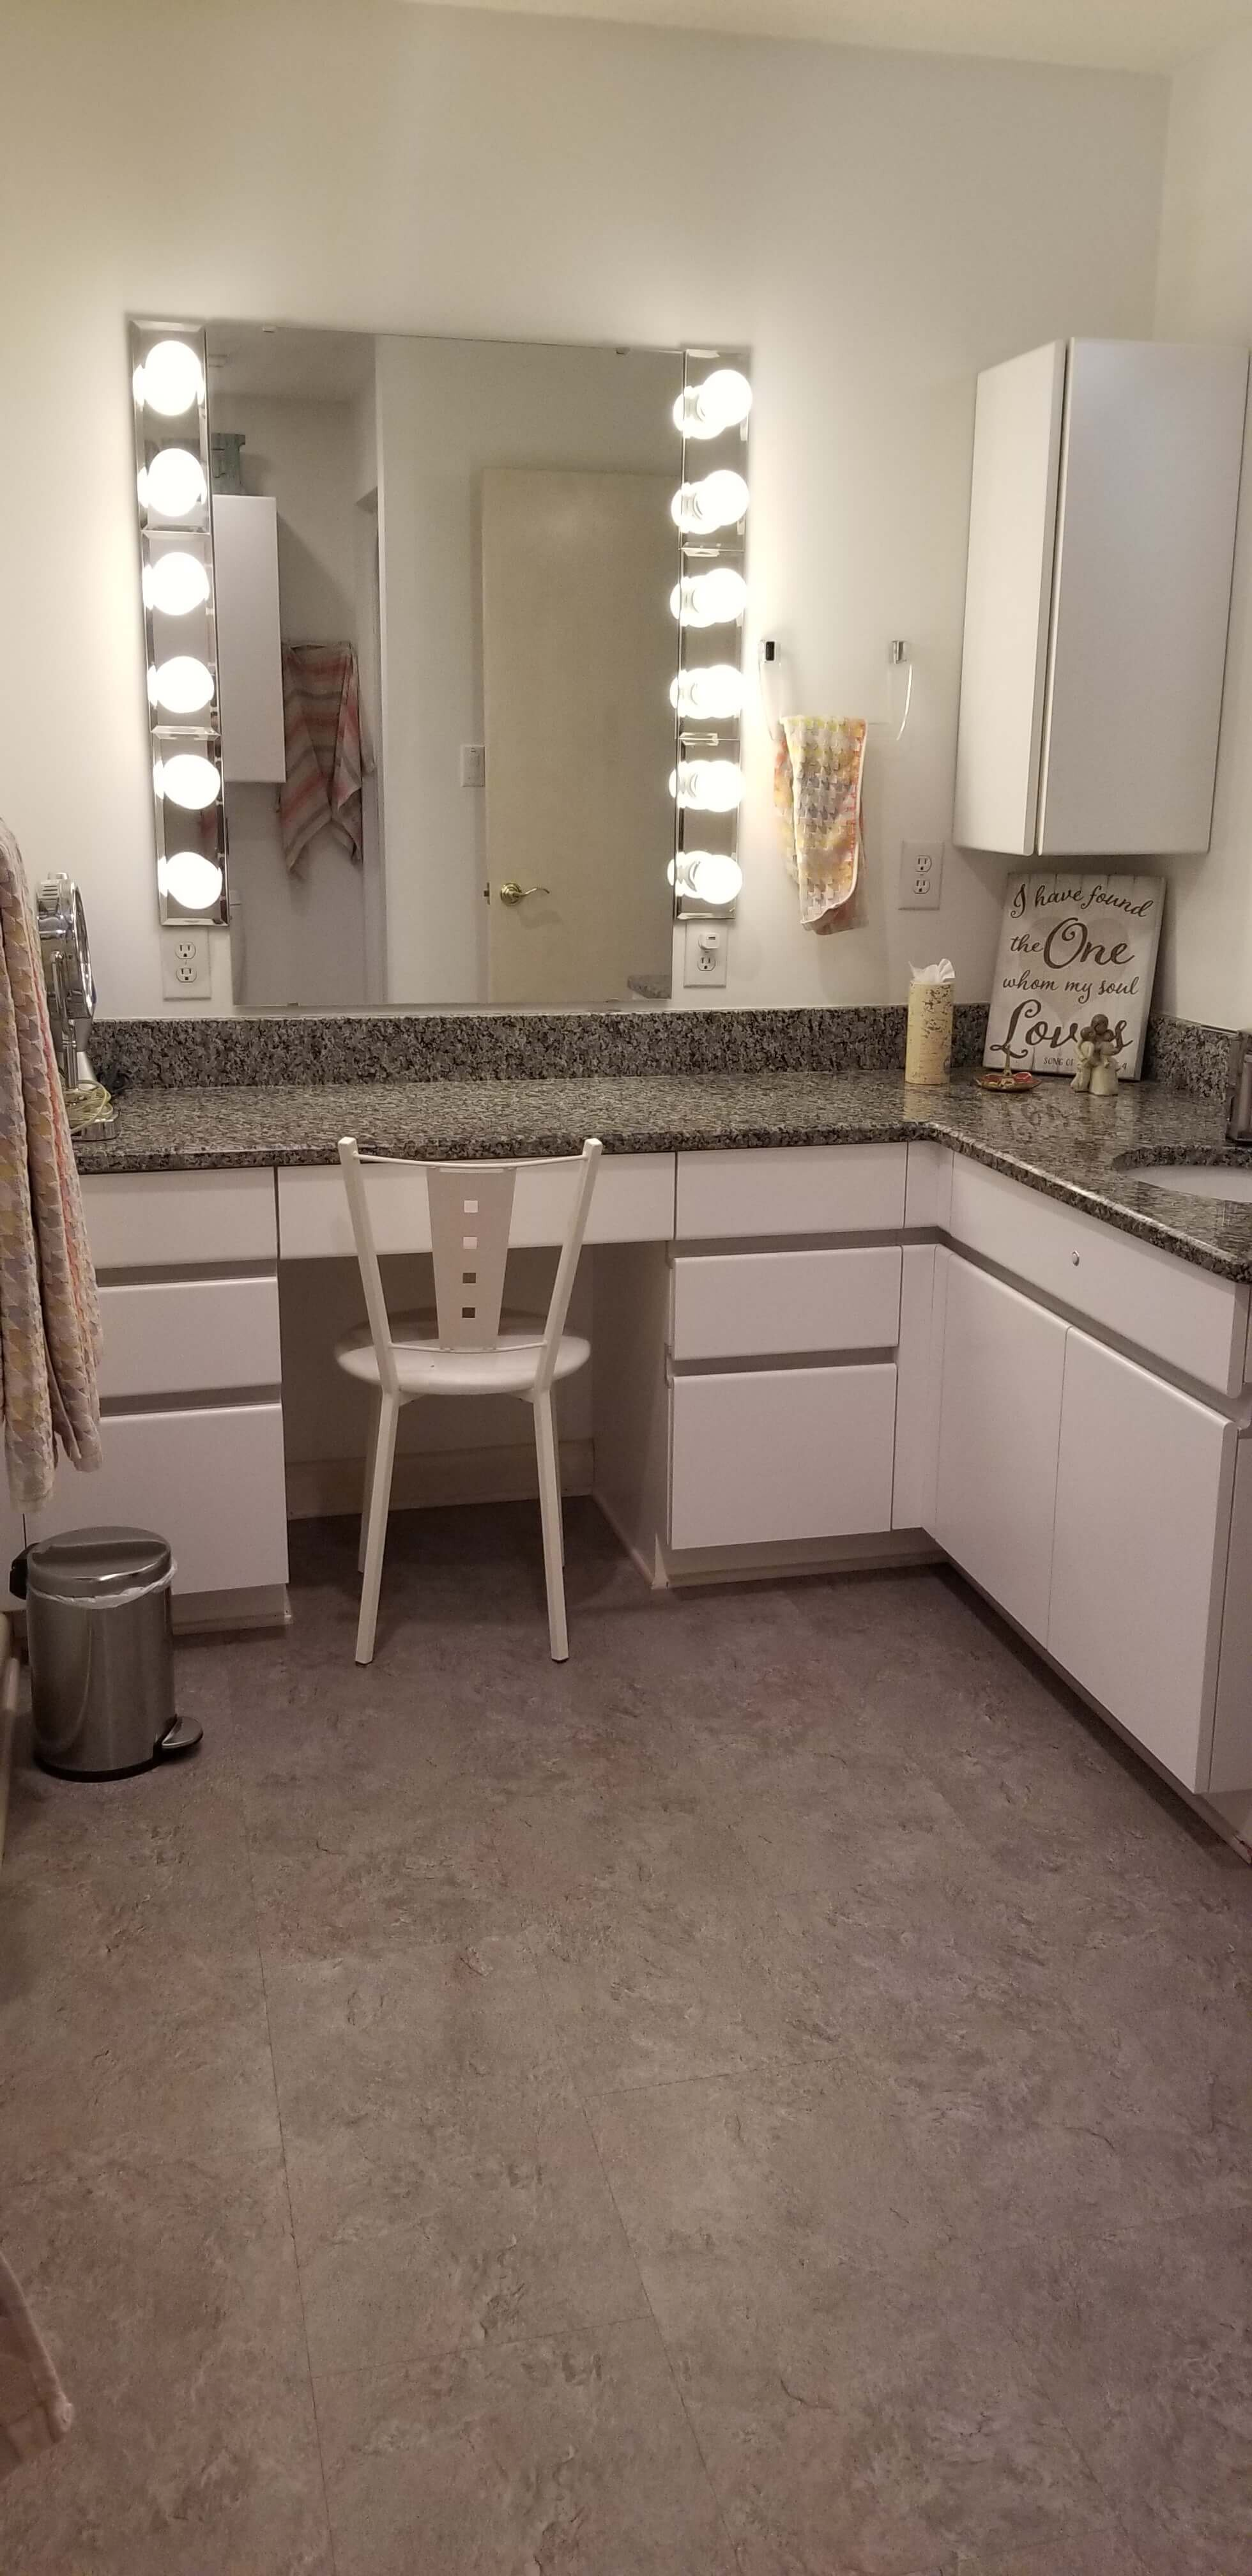 Design Ideas For A Small Master Bathroom Designed